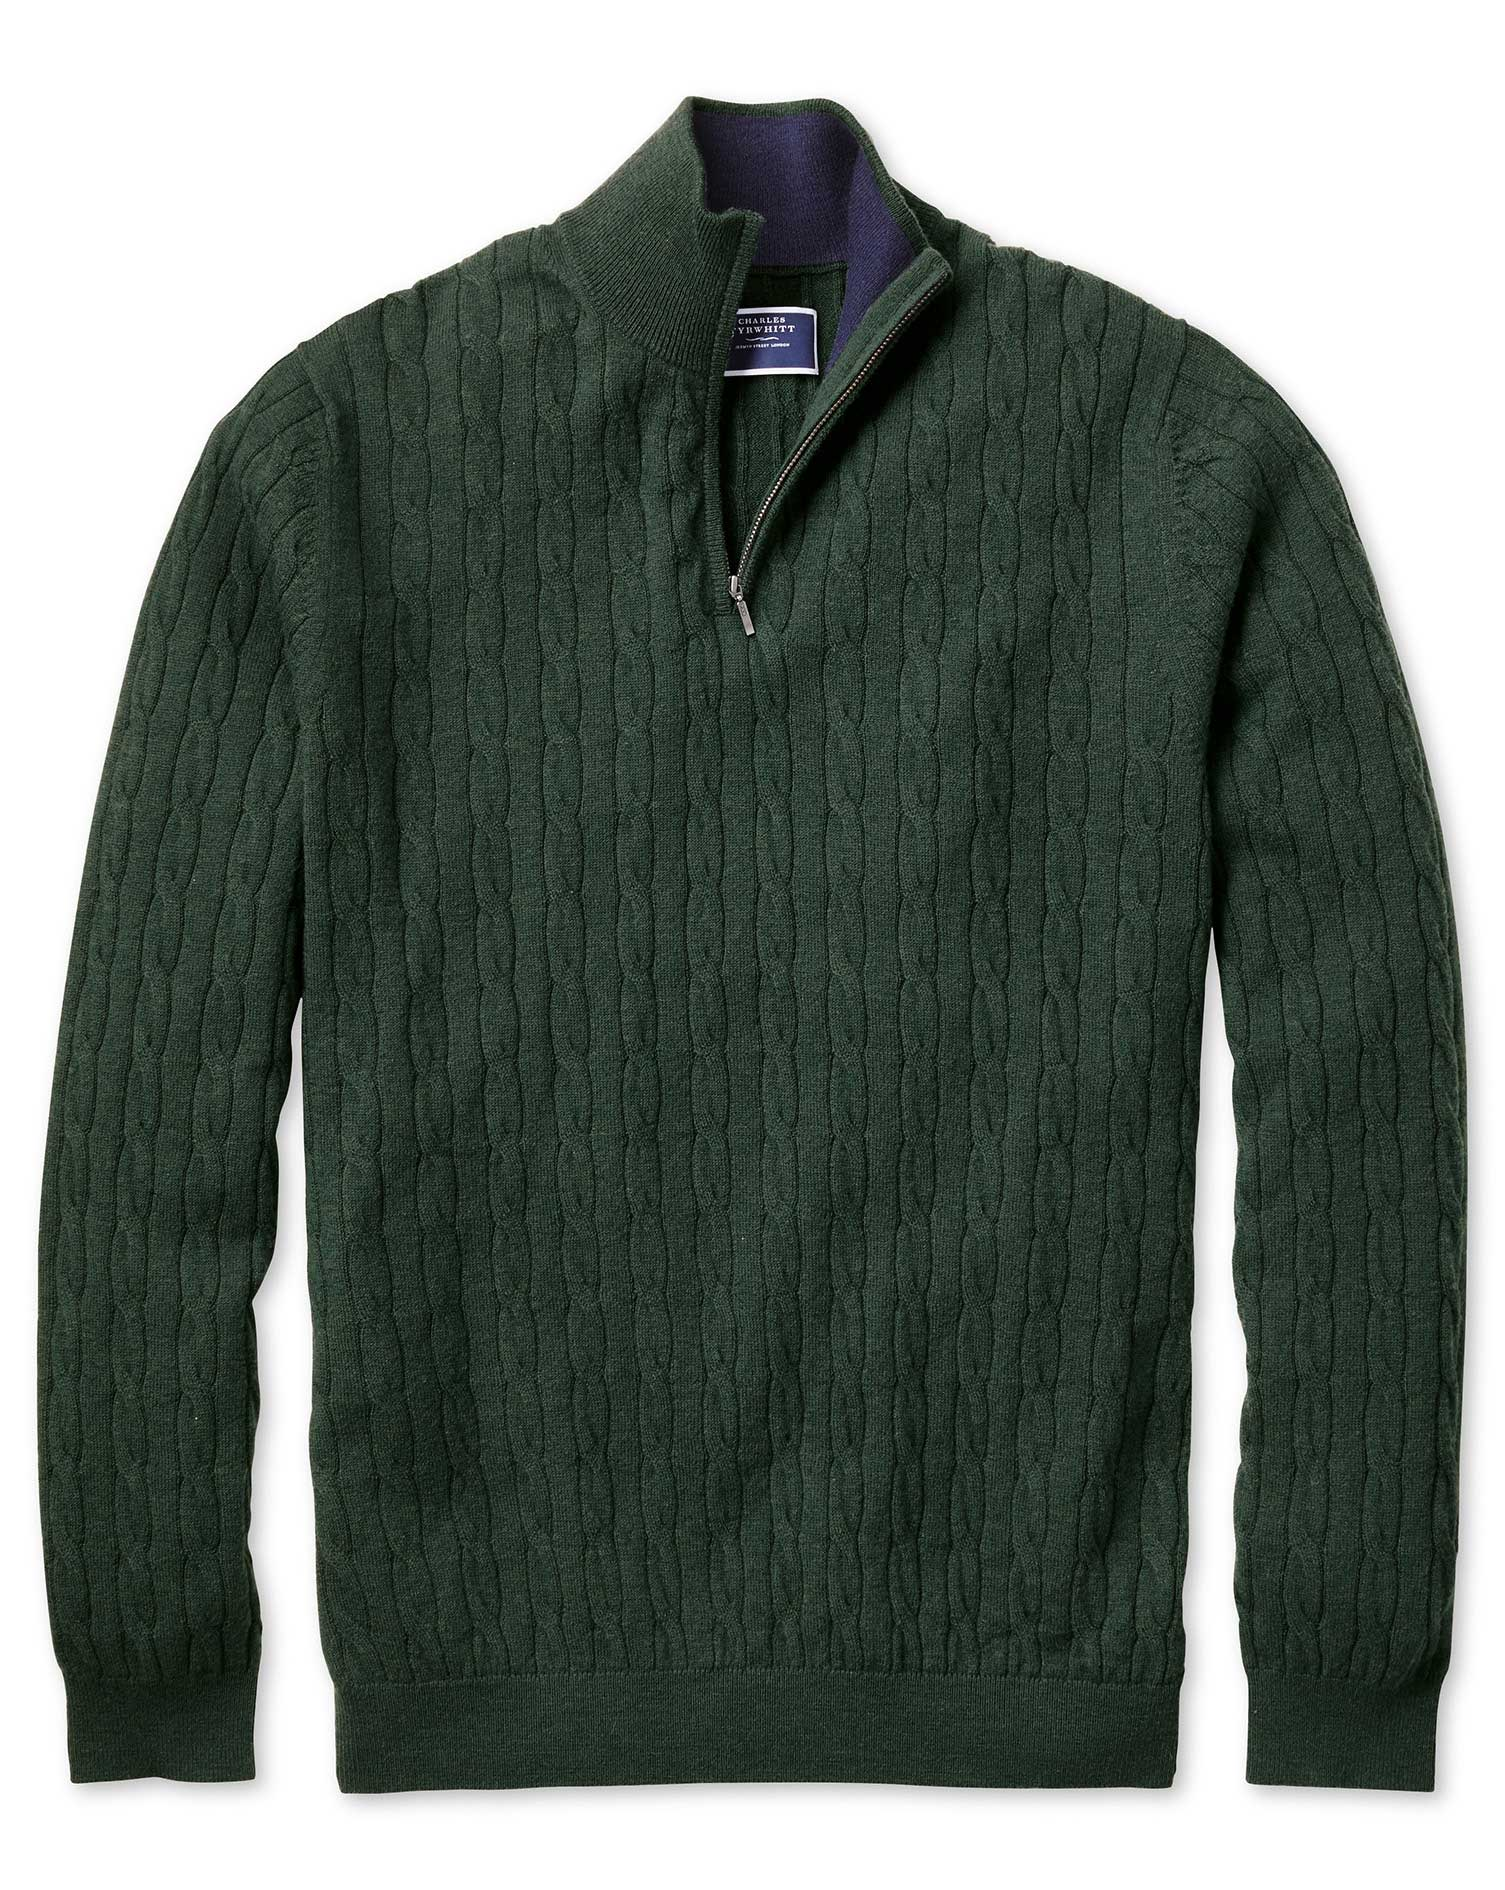 Green Zip Neck Lambswool Cable Knit Jumper Size Medium by Charles Tyrwhitt